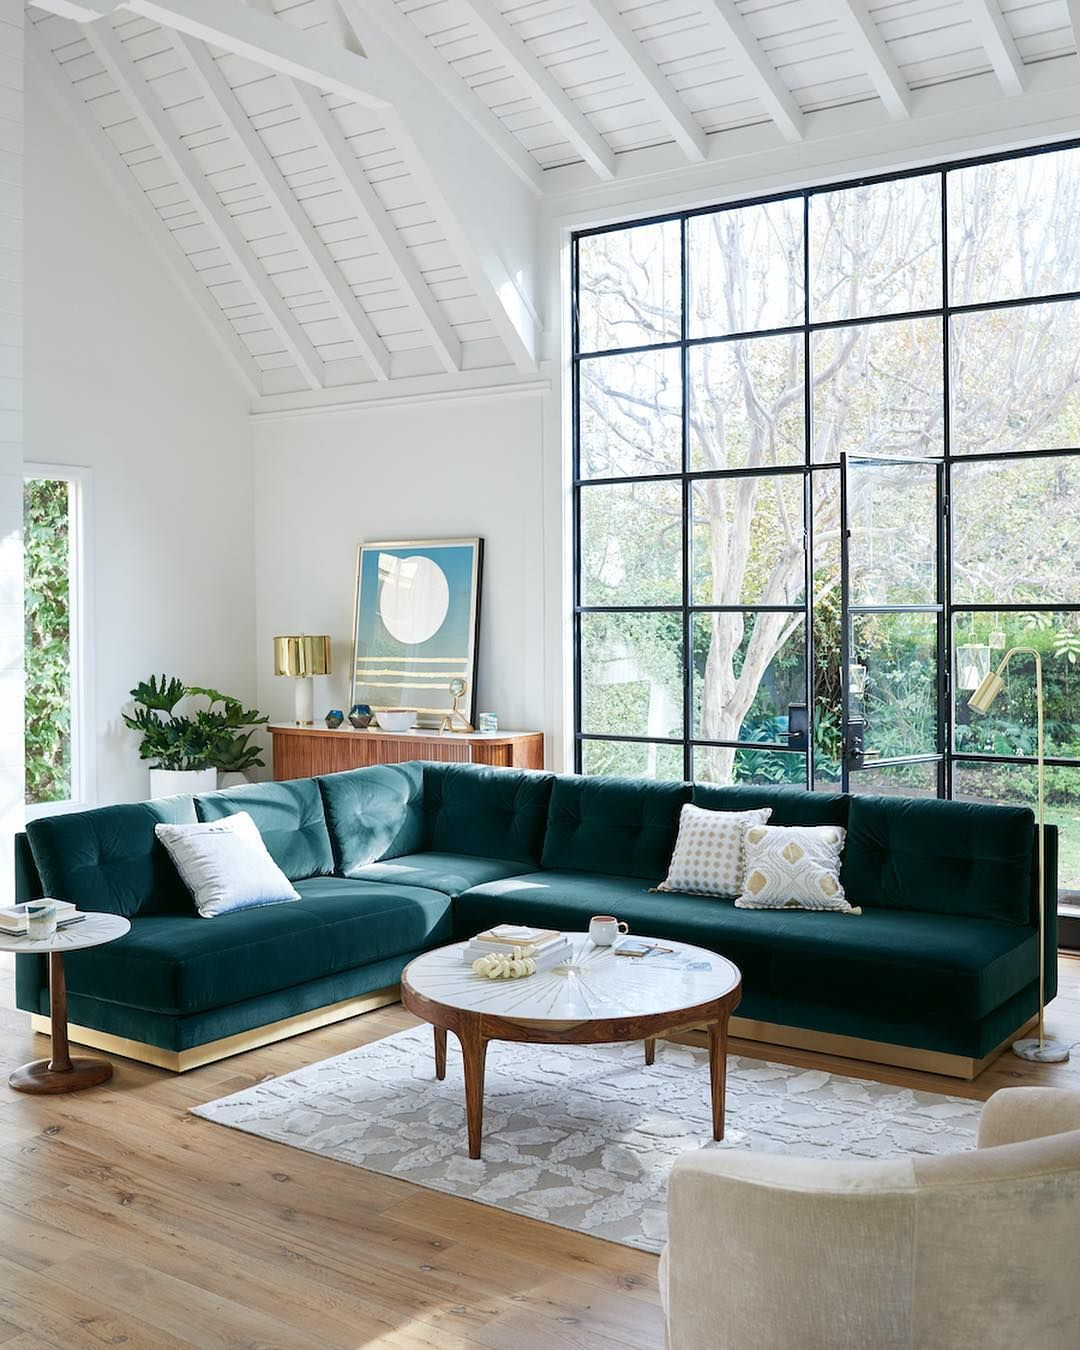 Pin by Katherine Mann on country living rooms | Pinterest | Teal ...